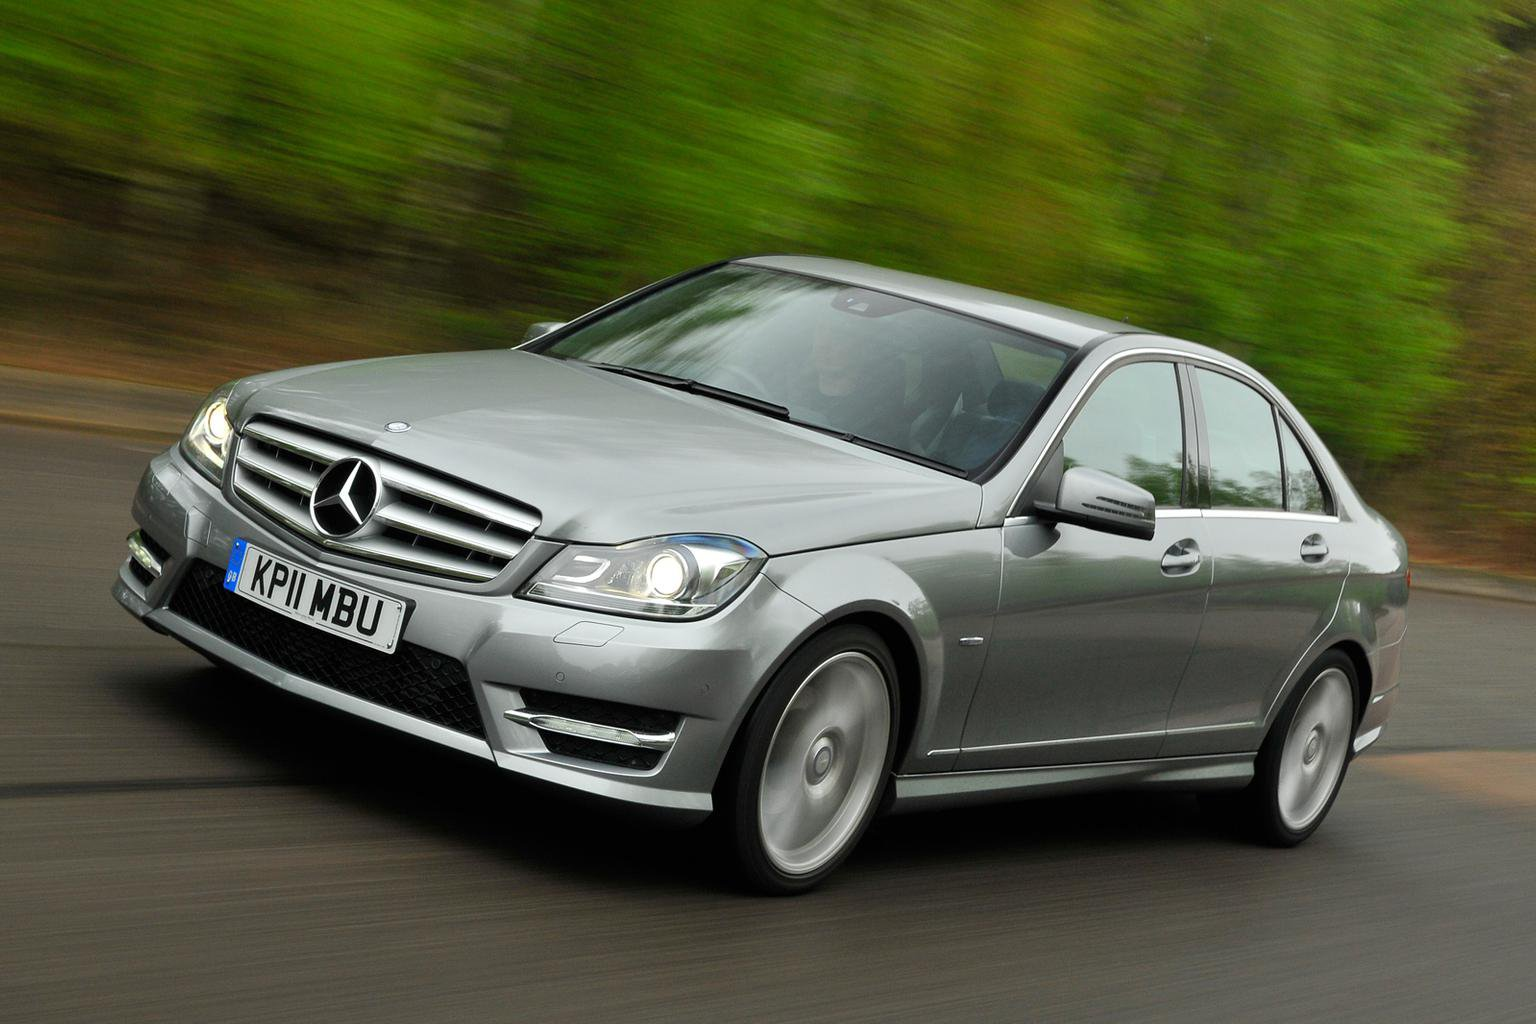 Used Mercedes C-Class from 14k